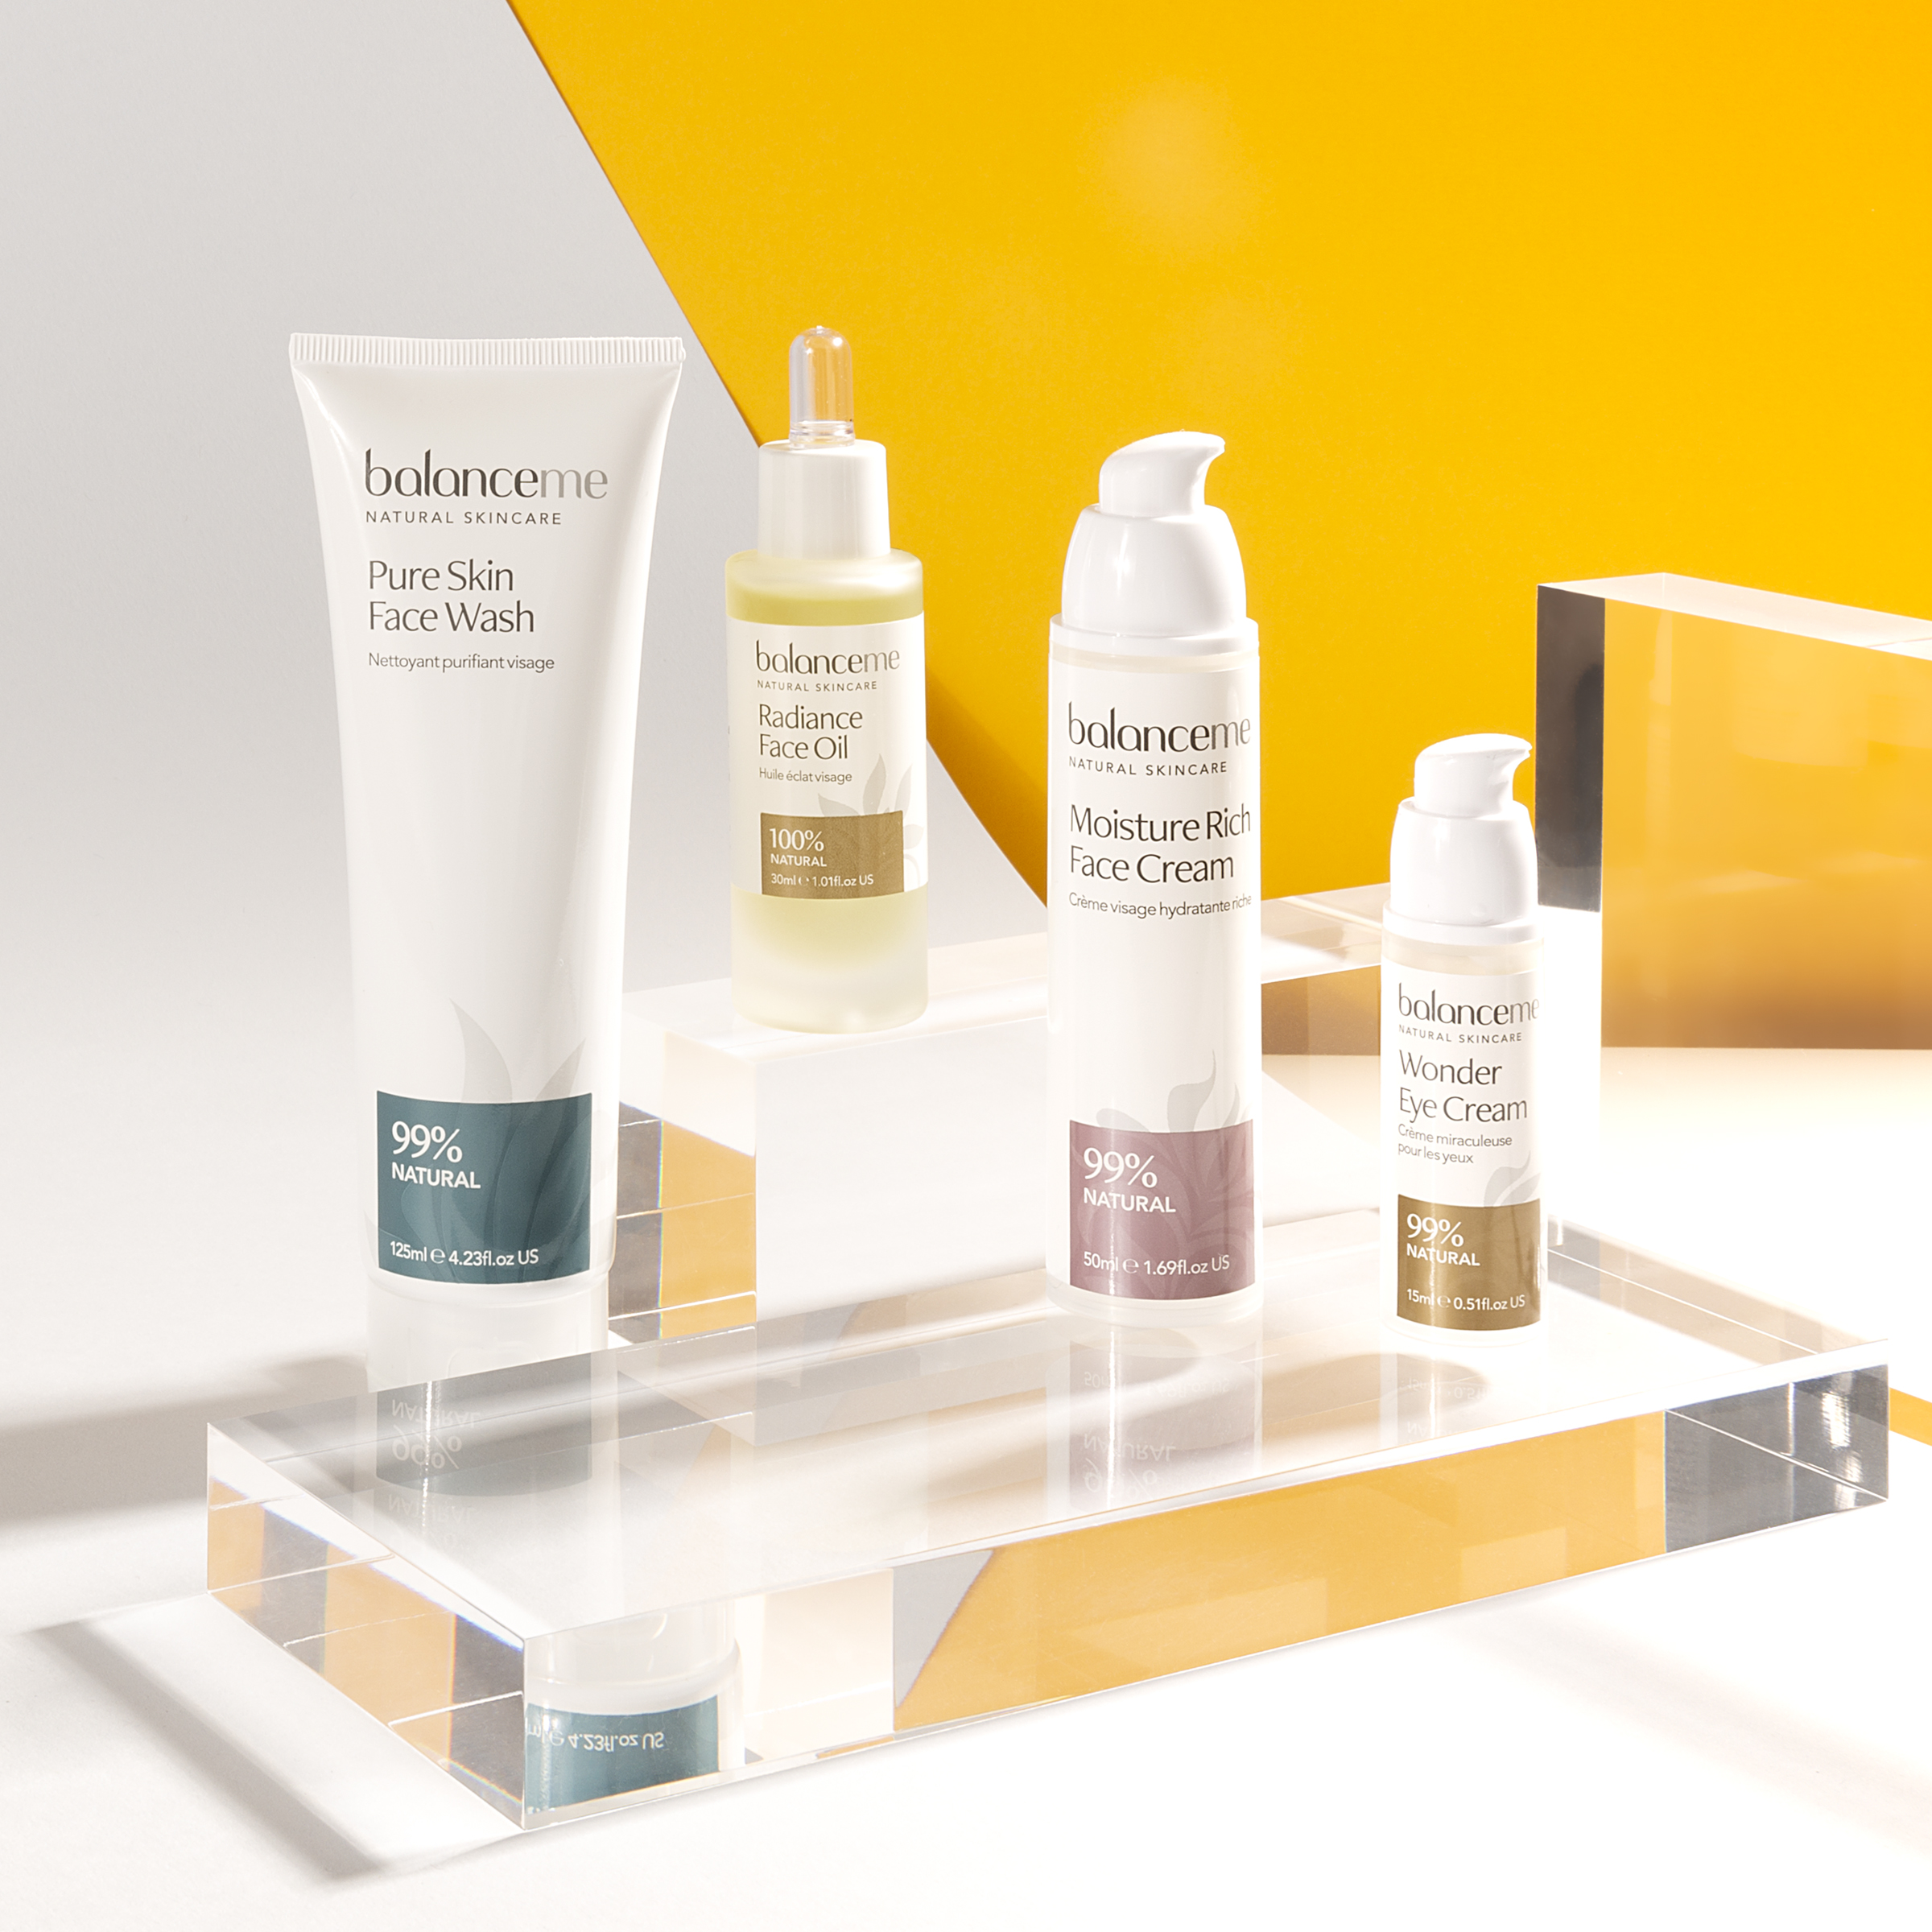 Win A Balance Me Beauty Prize Package